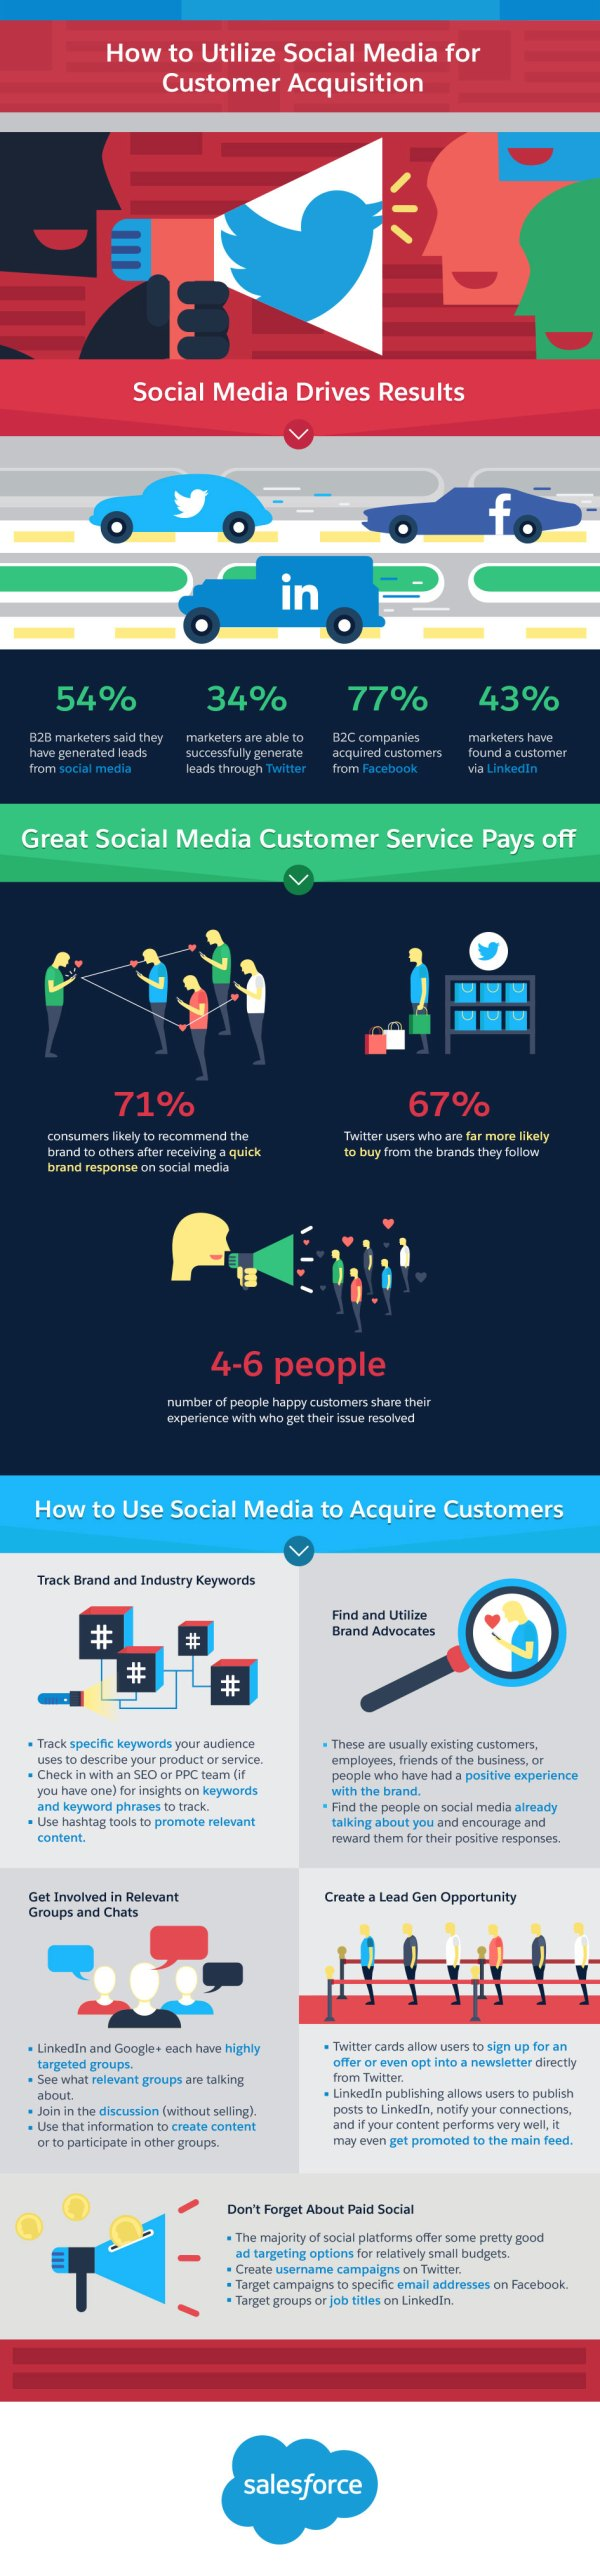 How to Utilize Social Mediafor Customer Acquisition